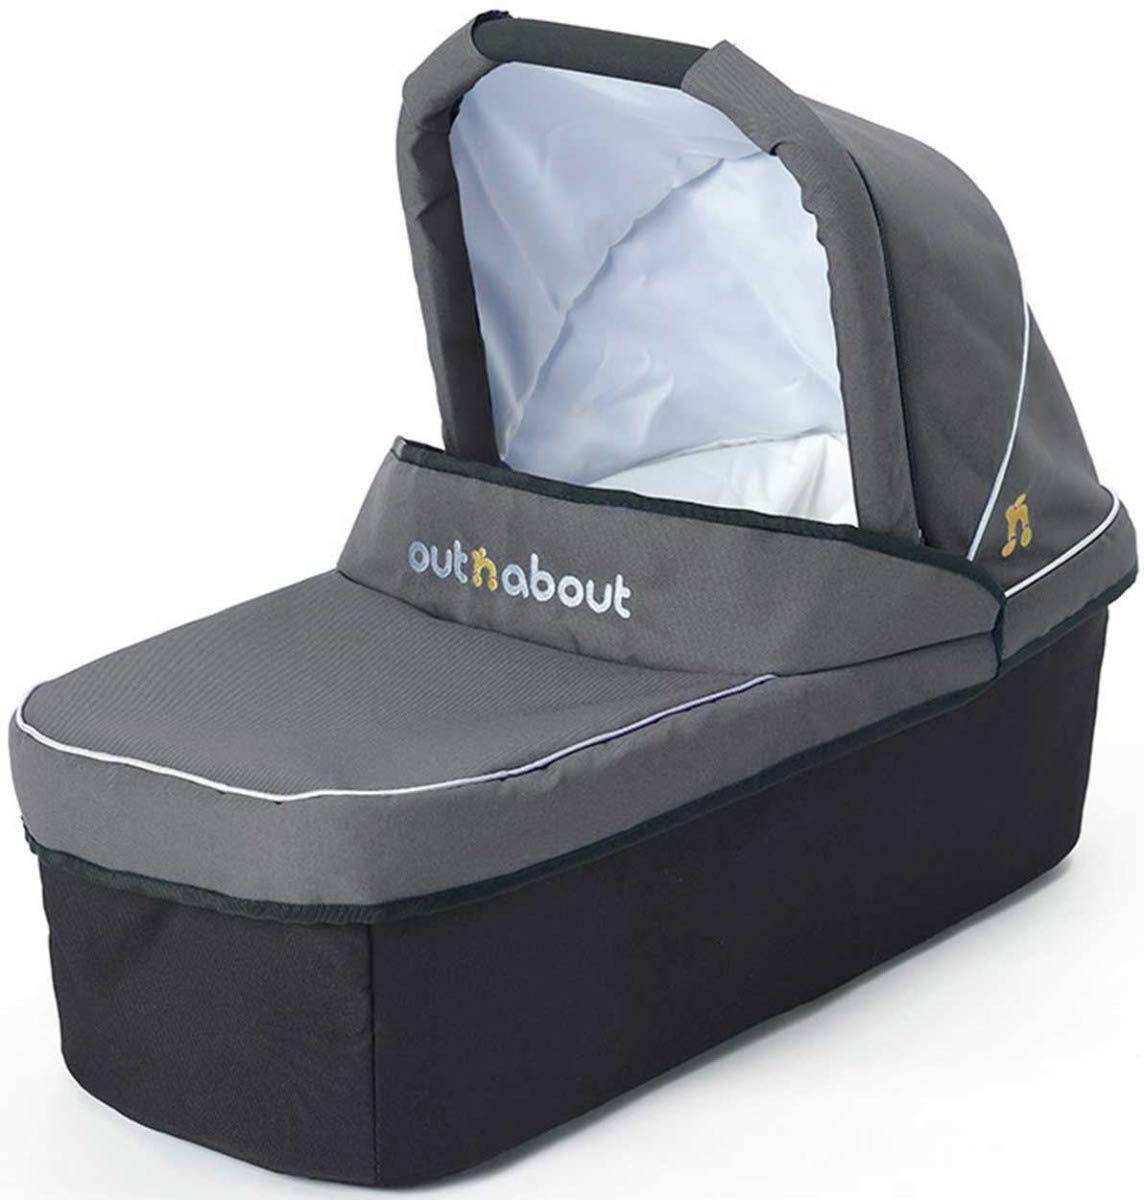 Out 'N' About Nipper Carry Cot - Steel Grey